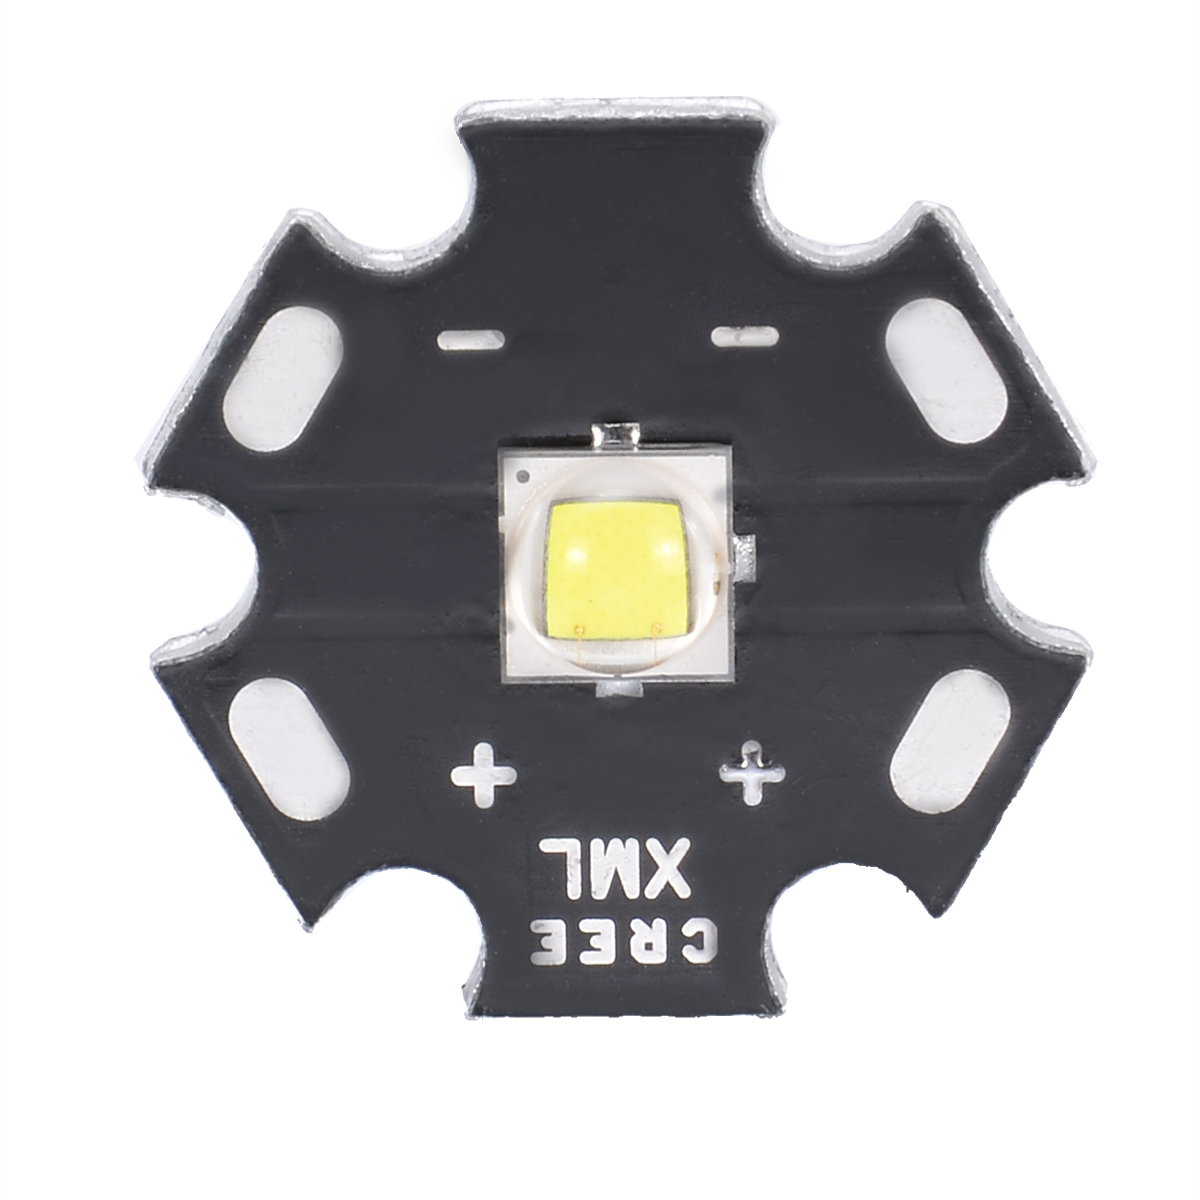 1pc Durable <font><b>Cree</b></font> XM-<font><b>L2</b></font> <font><b>LED</b></font> <font><b>U3</b></font> Bin 10W 3A 1260lm Neutral White Light <font><b>LED</b></font> Emitter Diode Chip with 20mm Star PCB Base for DIY image